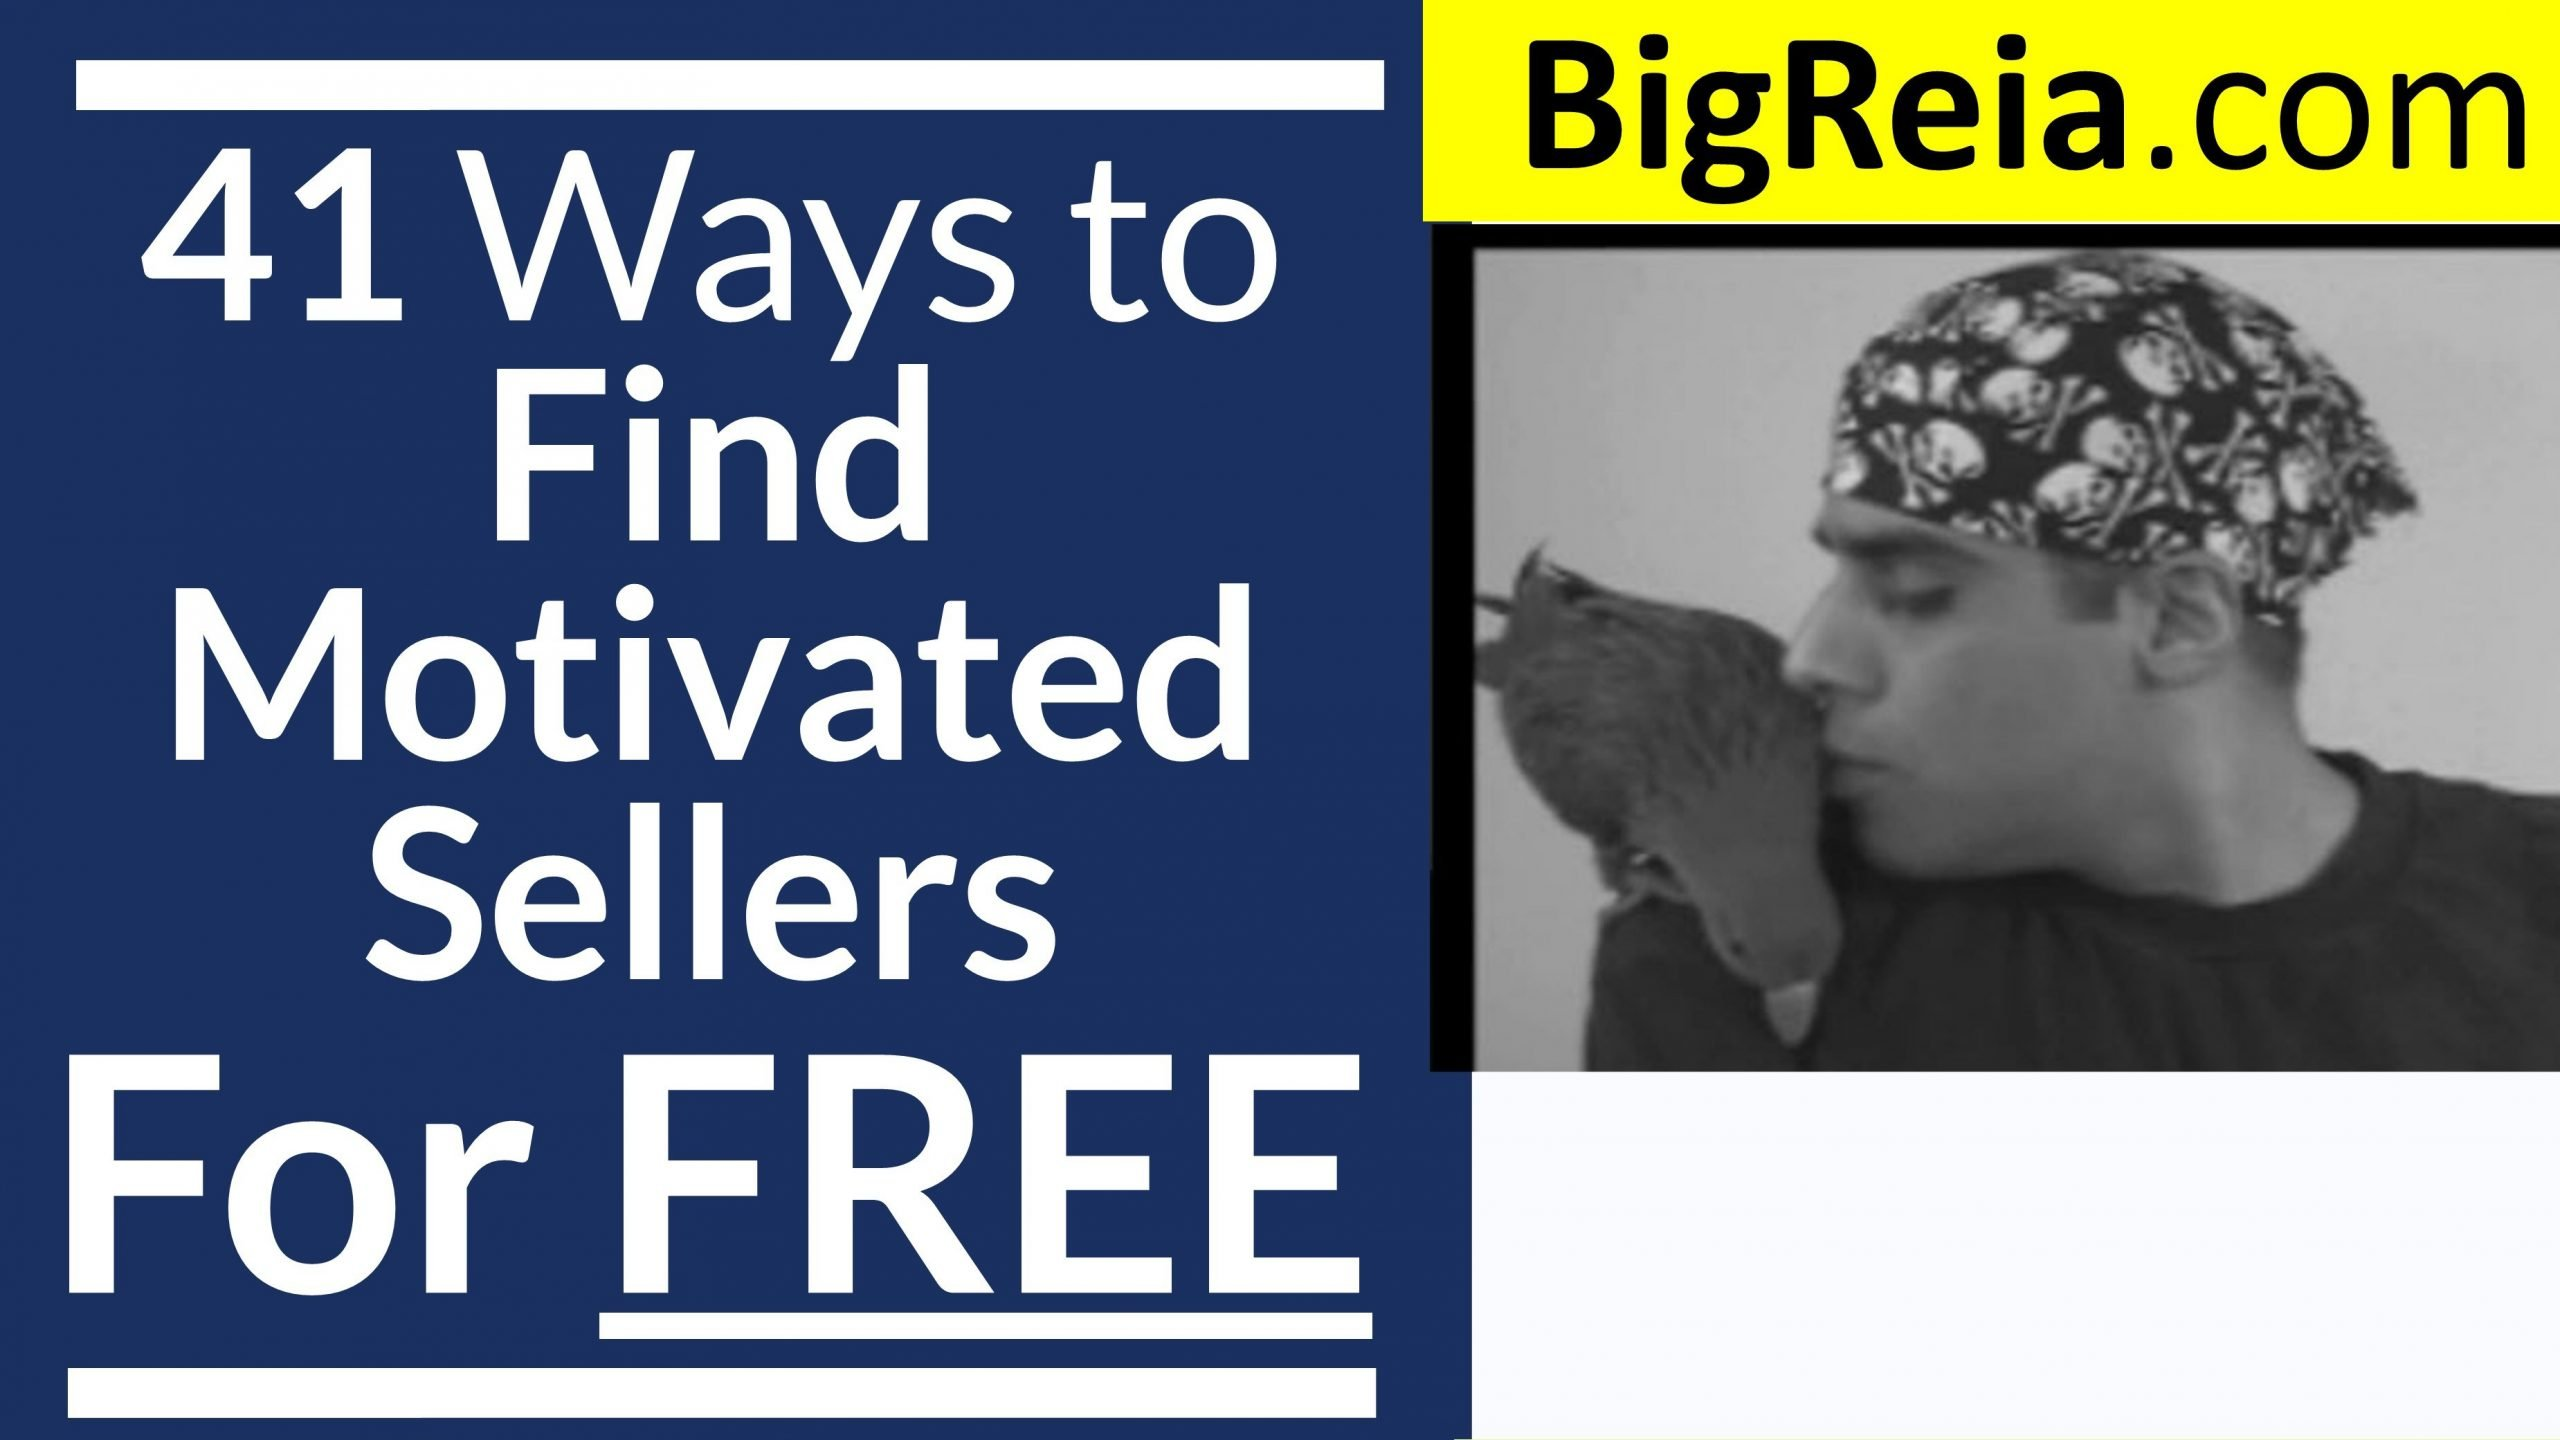 100 FREE Ways to Find Motivated Sellers for Real Estate Investors